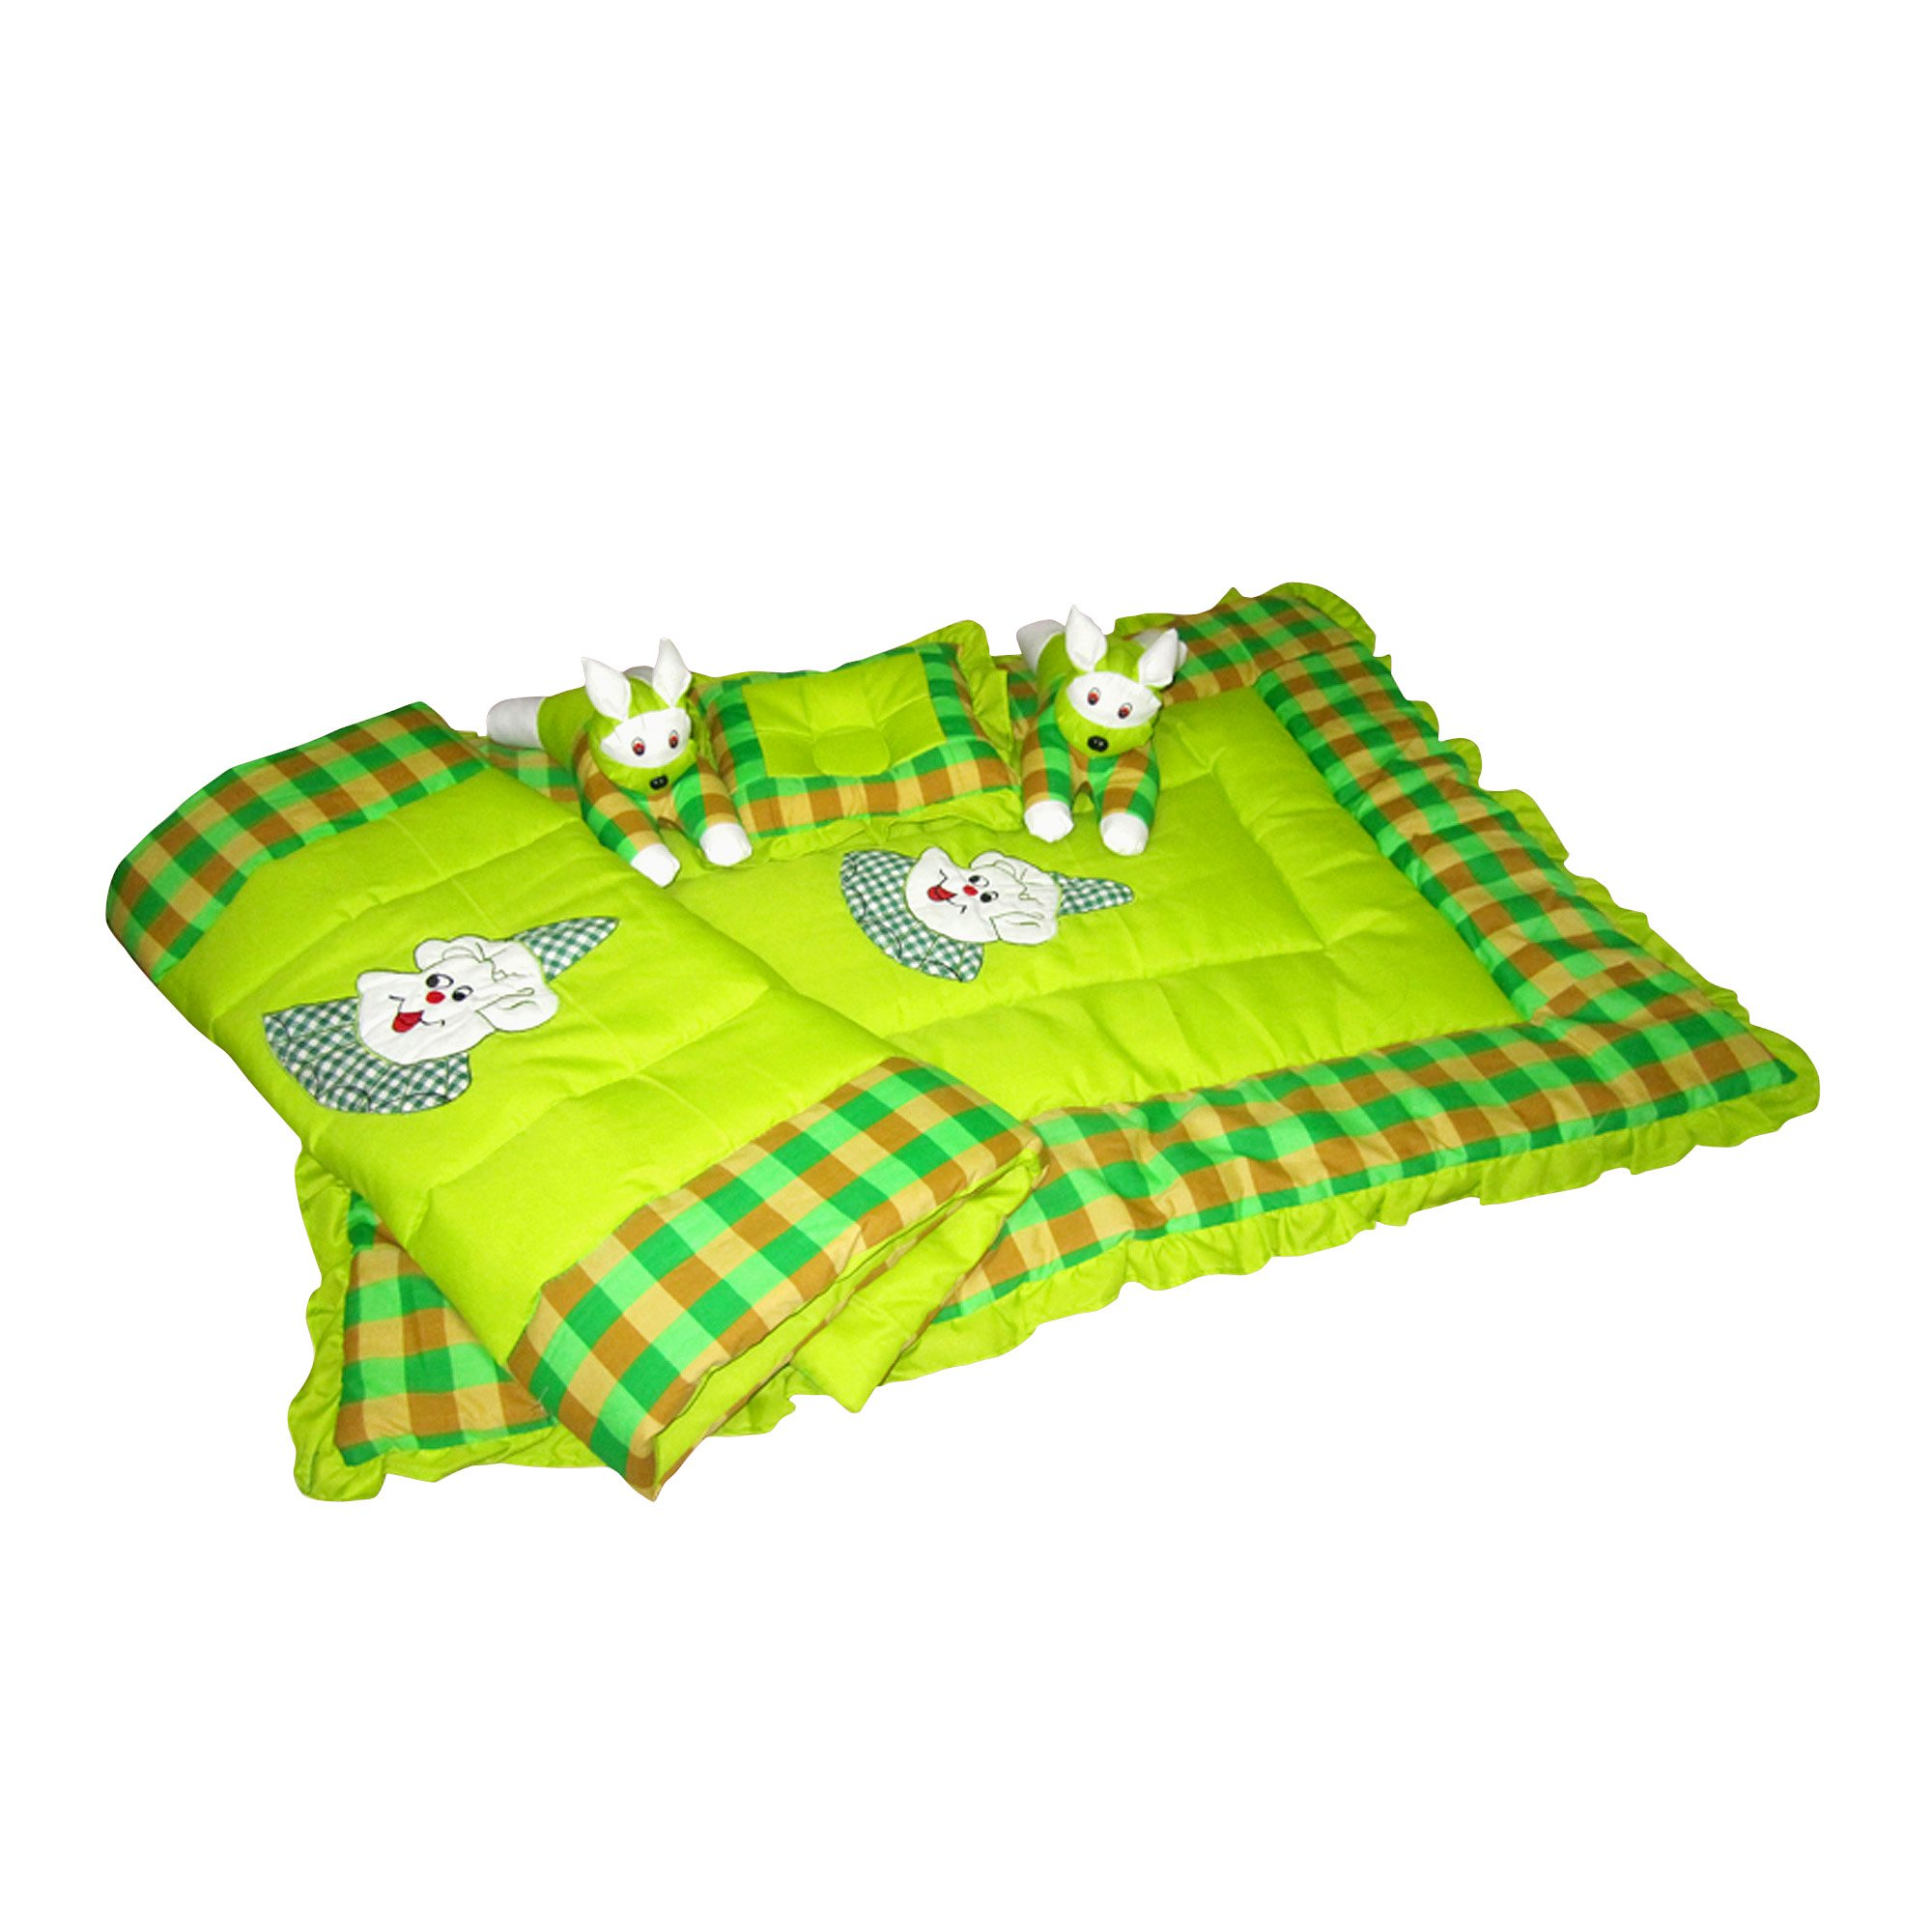 Maple Krafts Swiss Cotton Baby Bedding set upto 18 months Green with Pillow